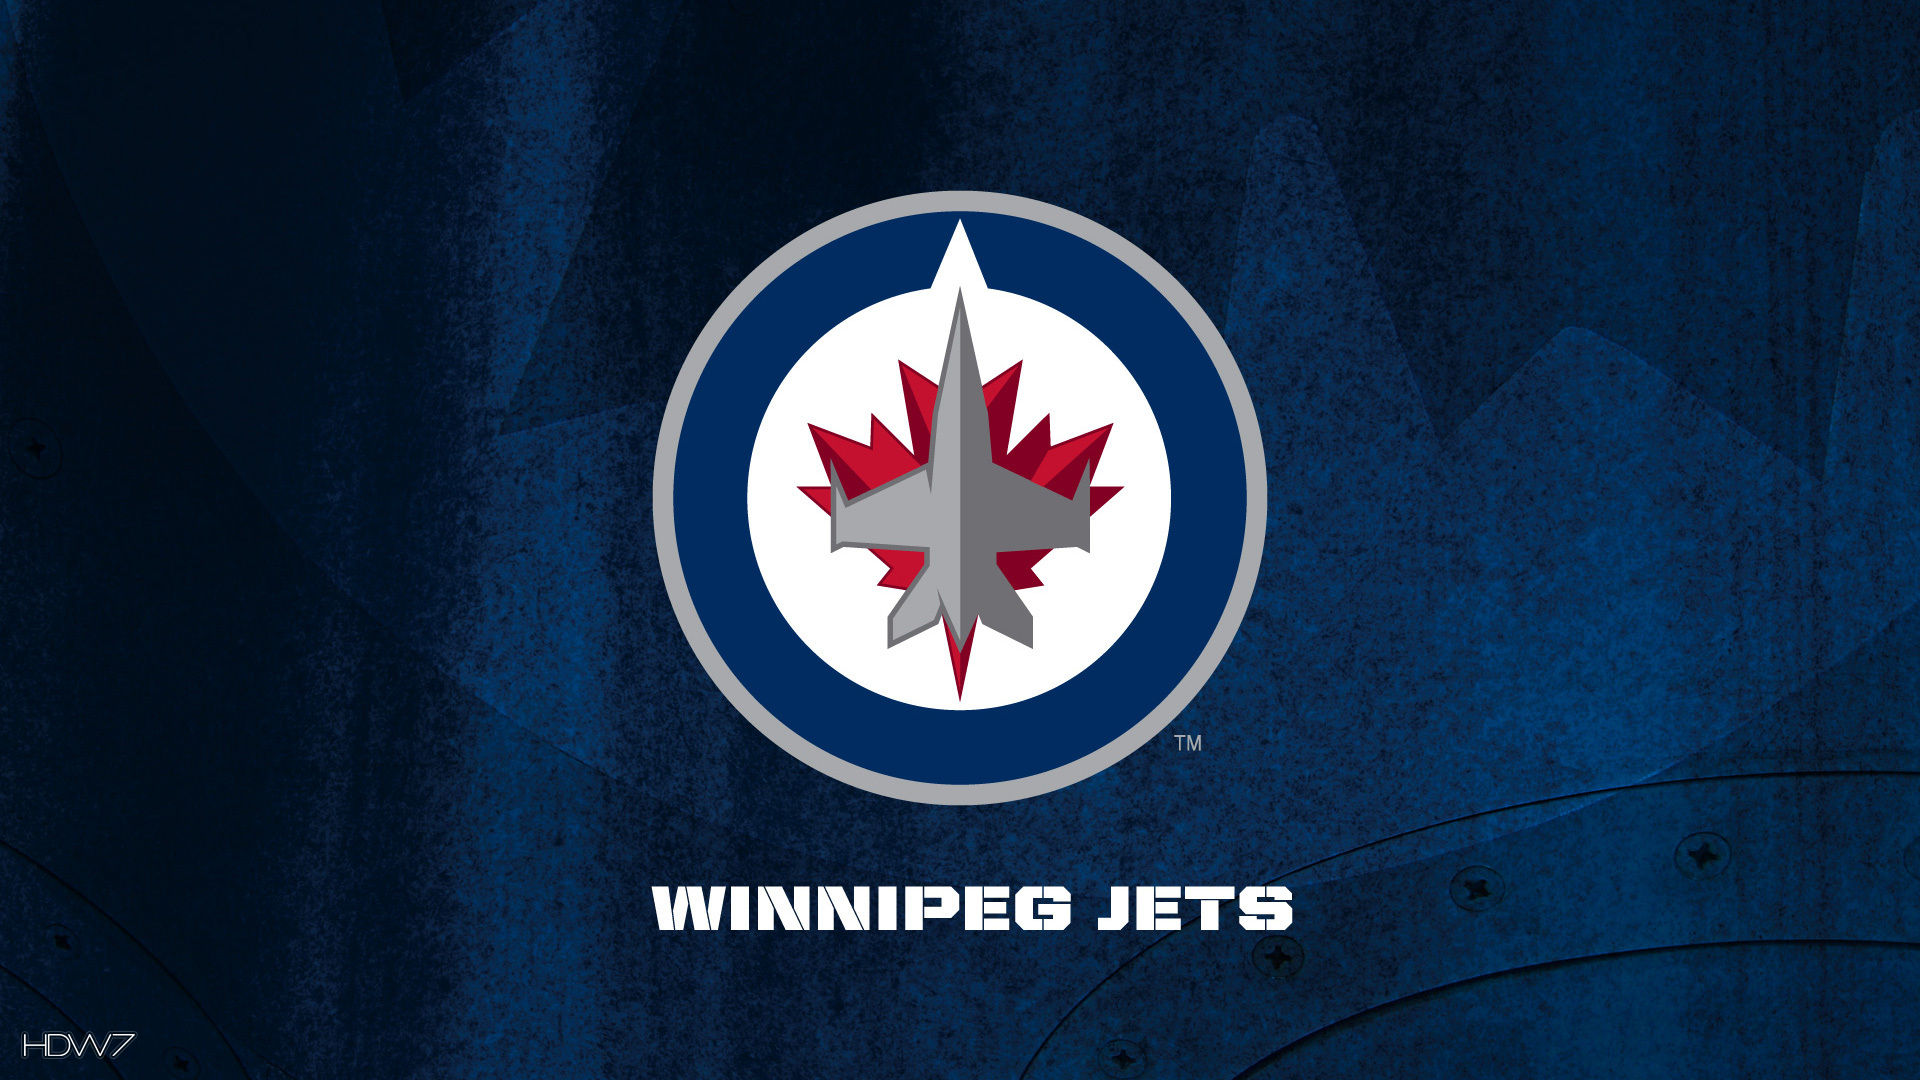 winnipeg jets wallpaper logo 1920x1080